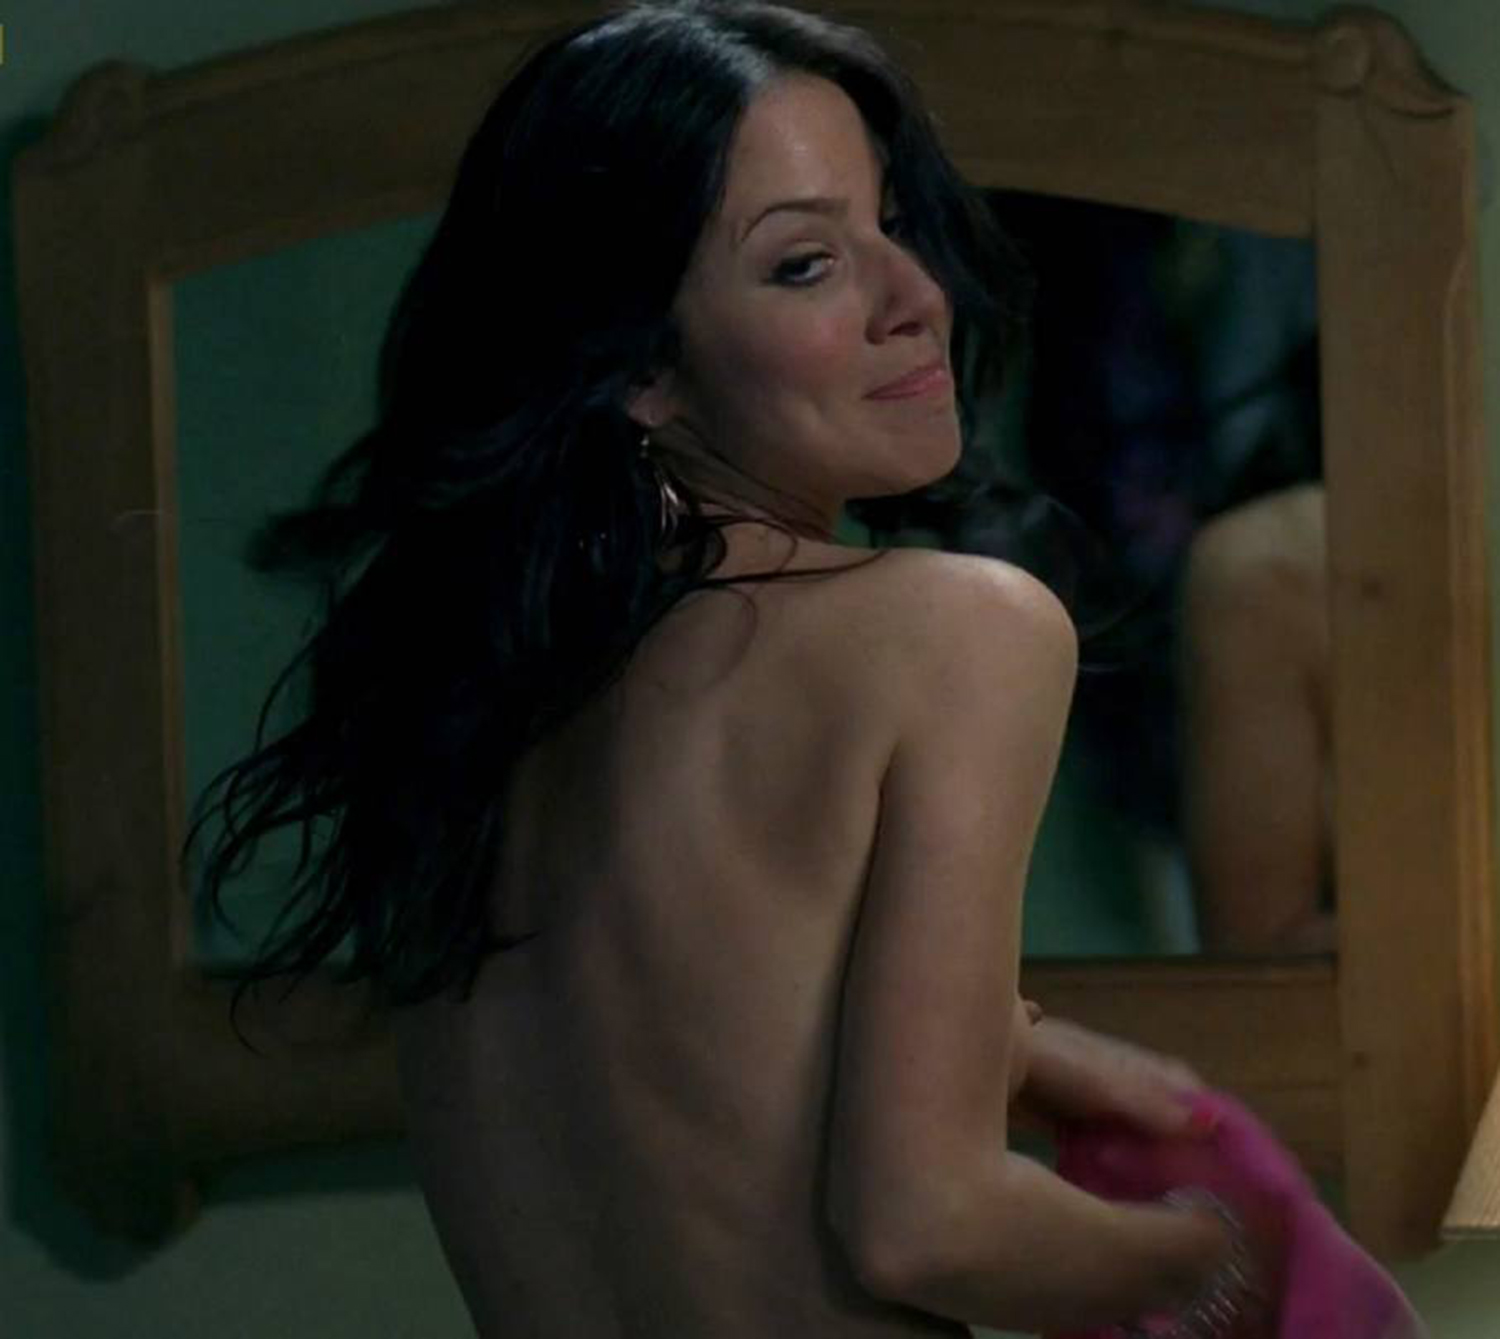 Words... super, Lynn collins hot understand you